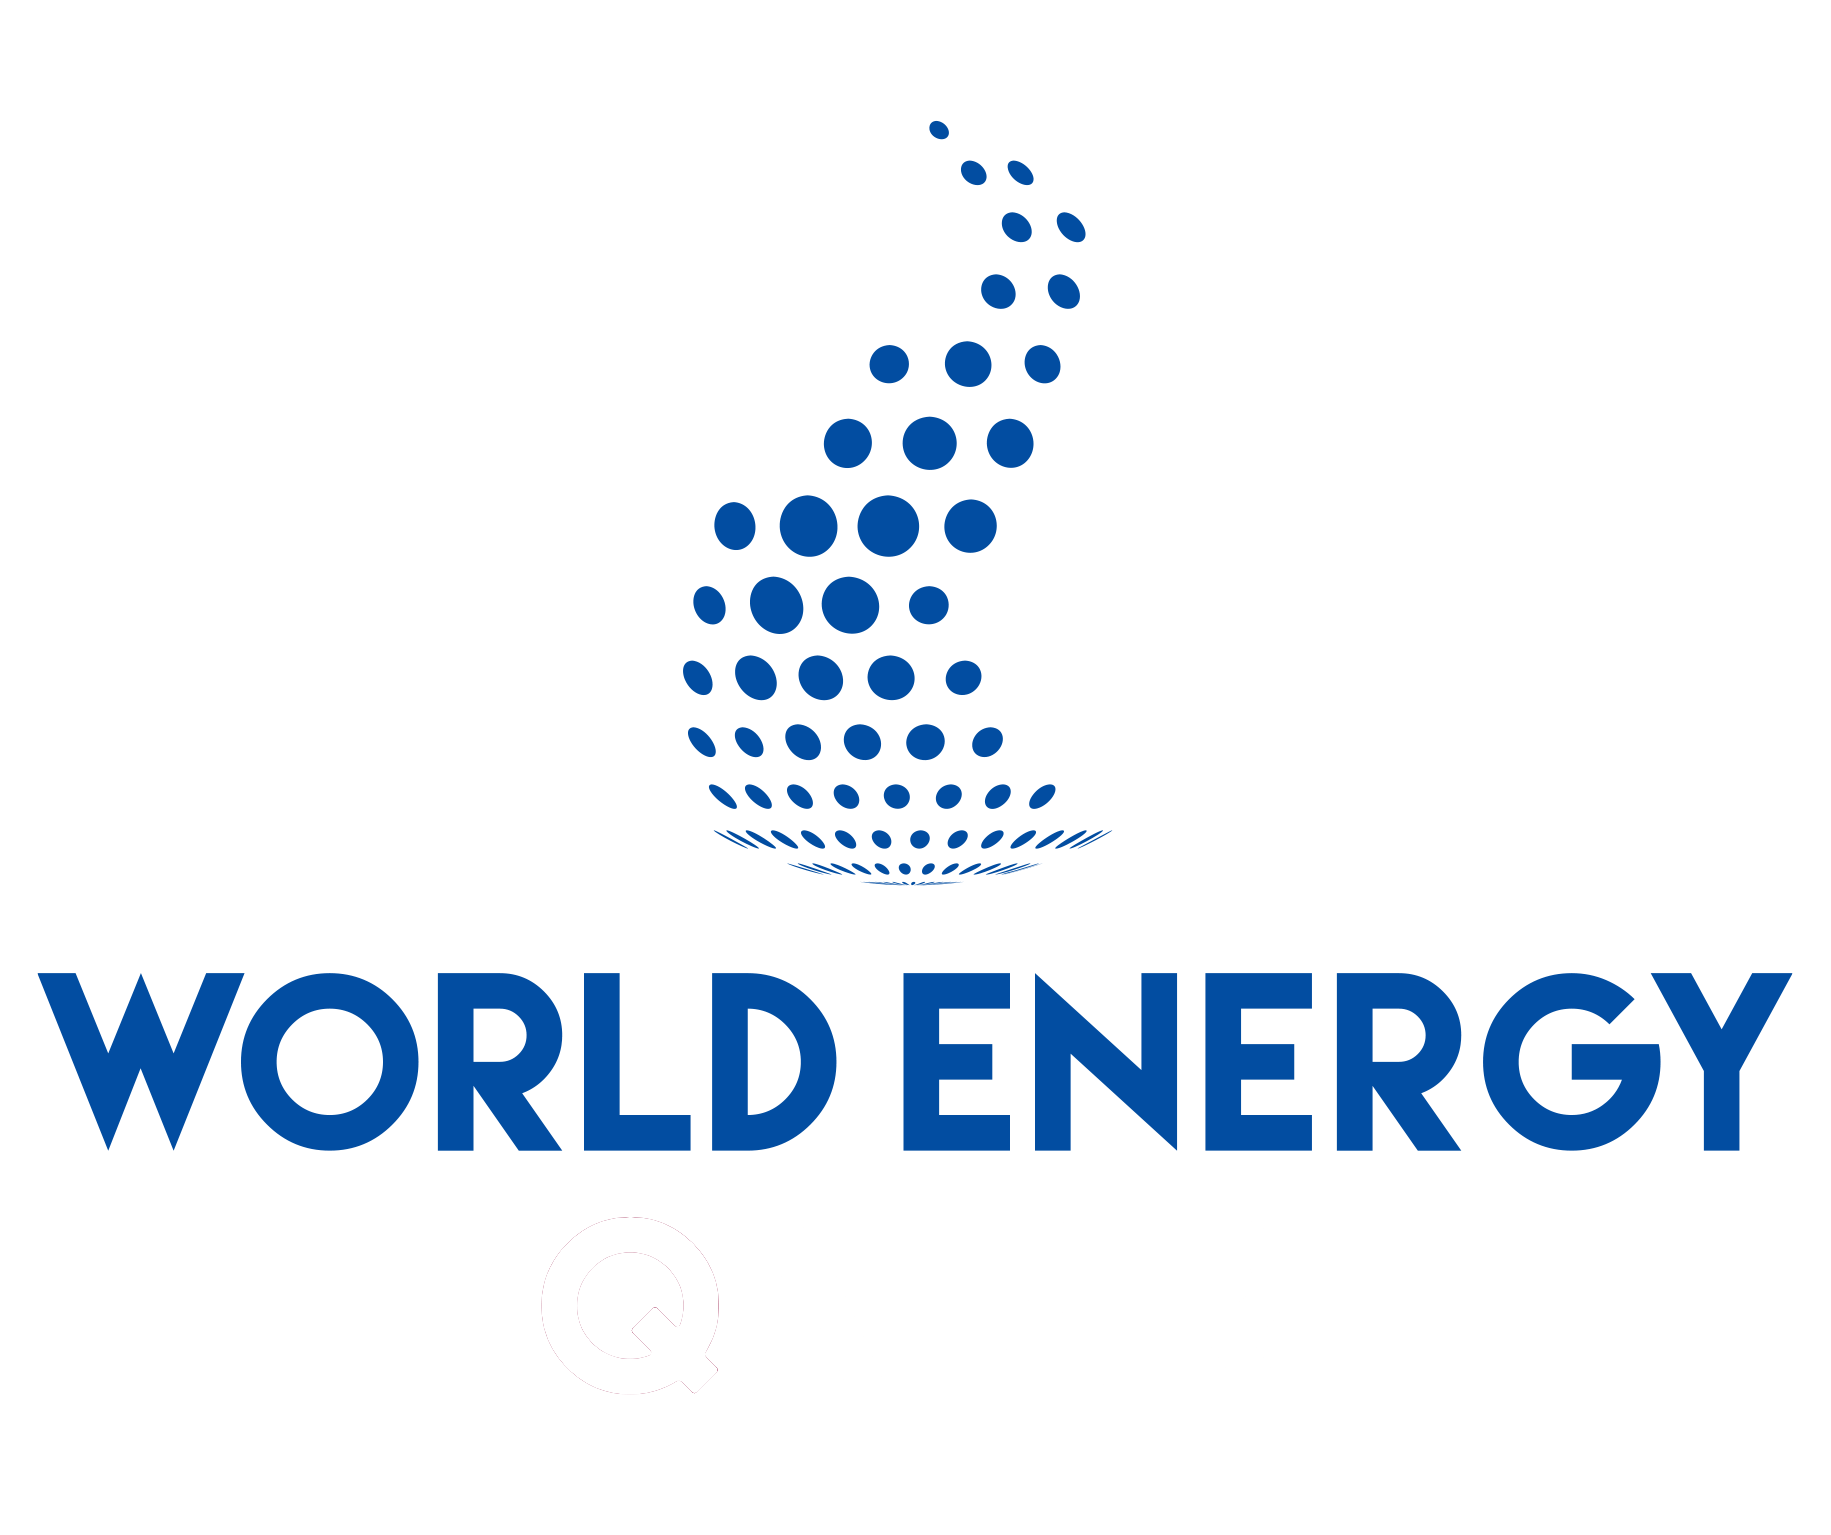 World Energy Qatar